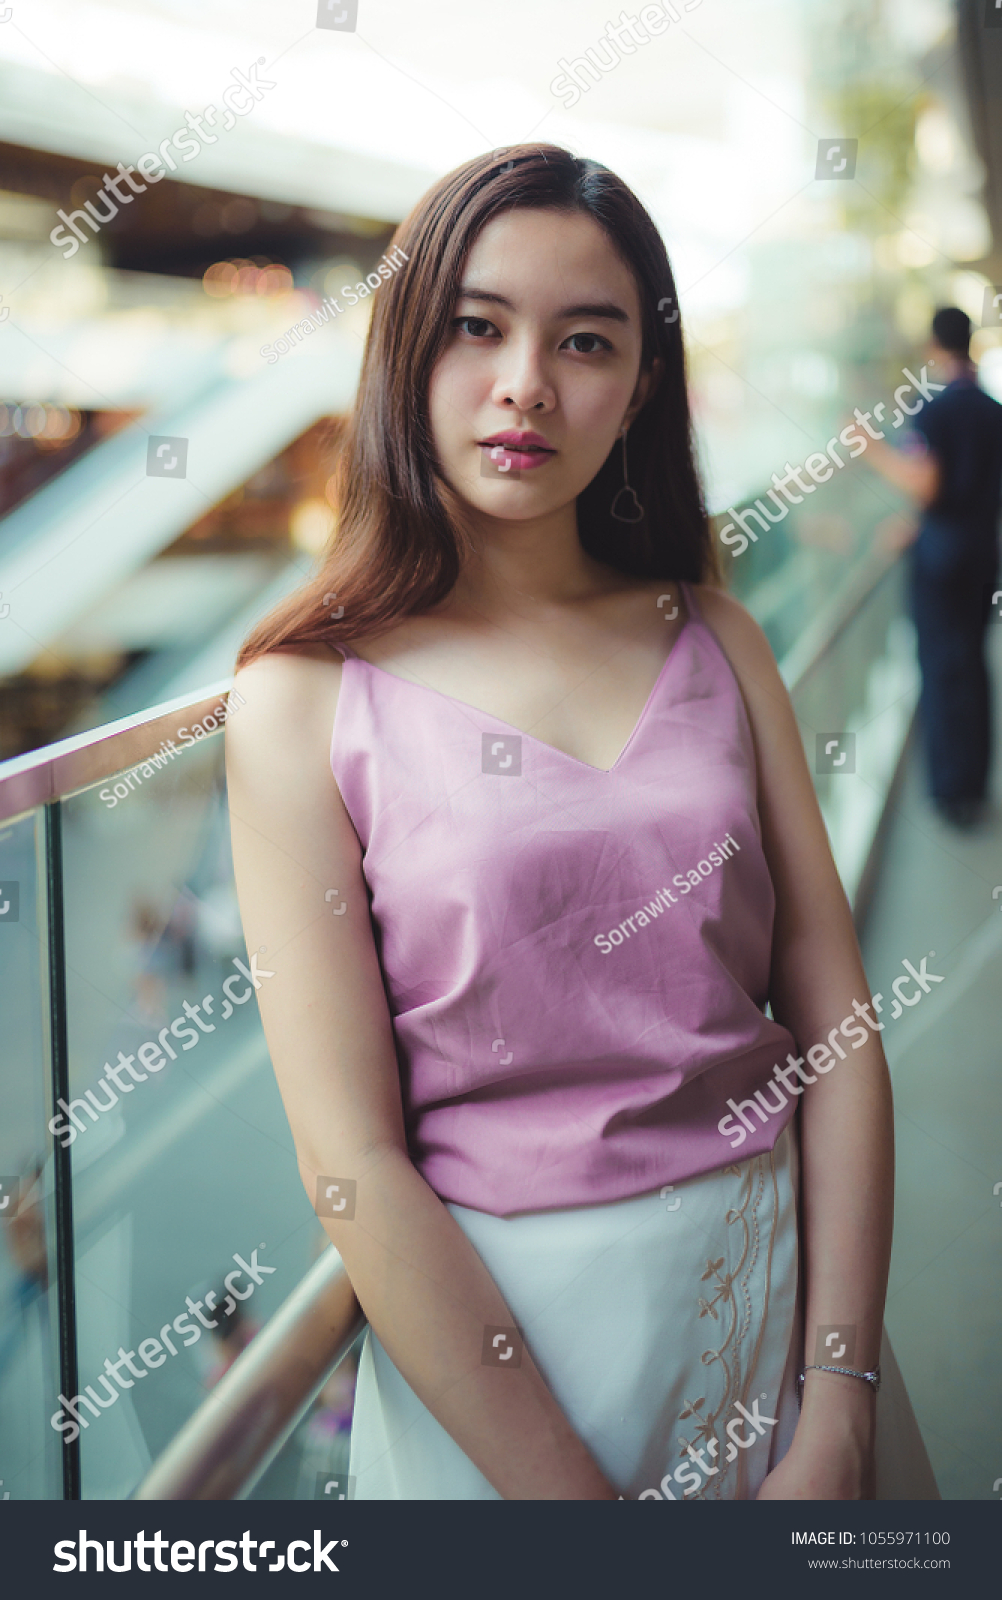 Asian Teen Girl Beautiful Standing Mirror Stock Photo Edit Now 1055971100 Find the latest tracks, albums, and images from exploited asian teens. https www shutterstock com image photo asian teen girl beautiful standing mirror 1055971100